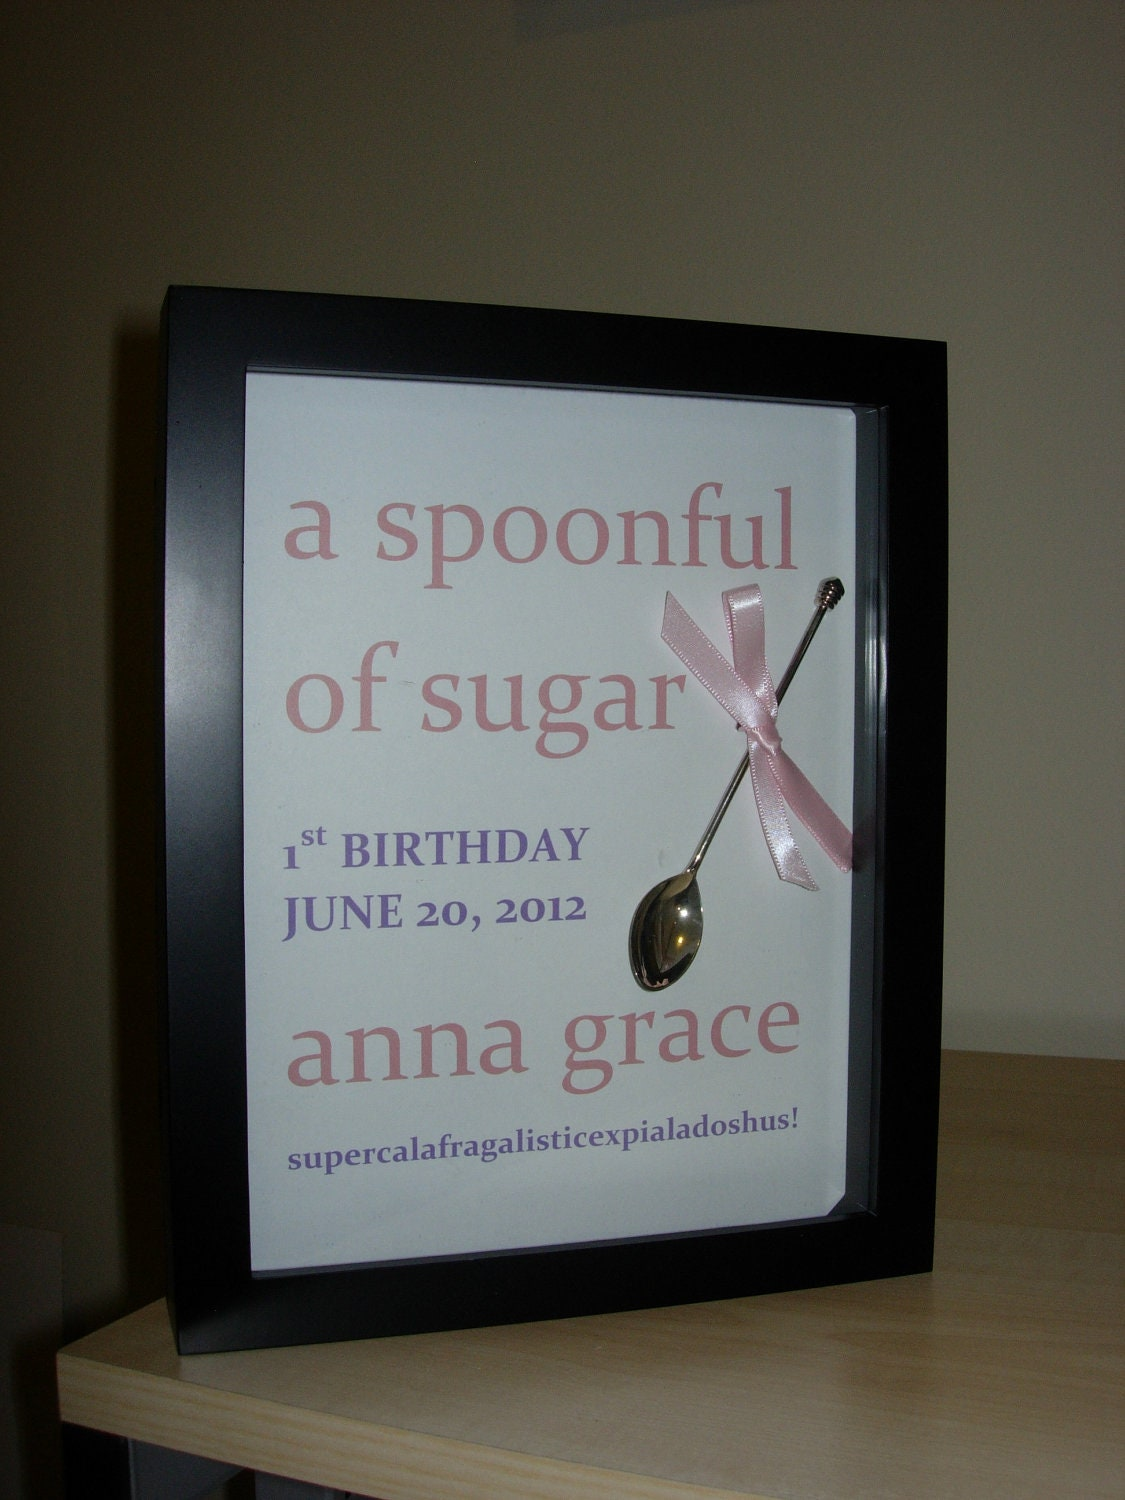 A SPOONFUL OF SUGAR - Themed personalized Birthday Gift Shadow Box